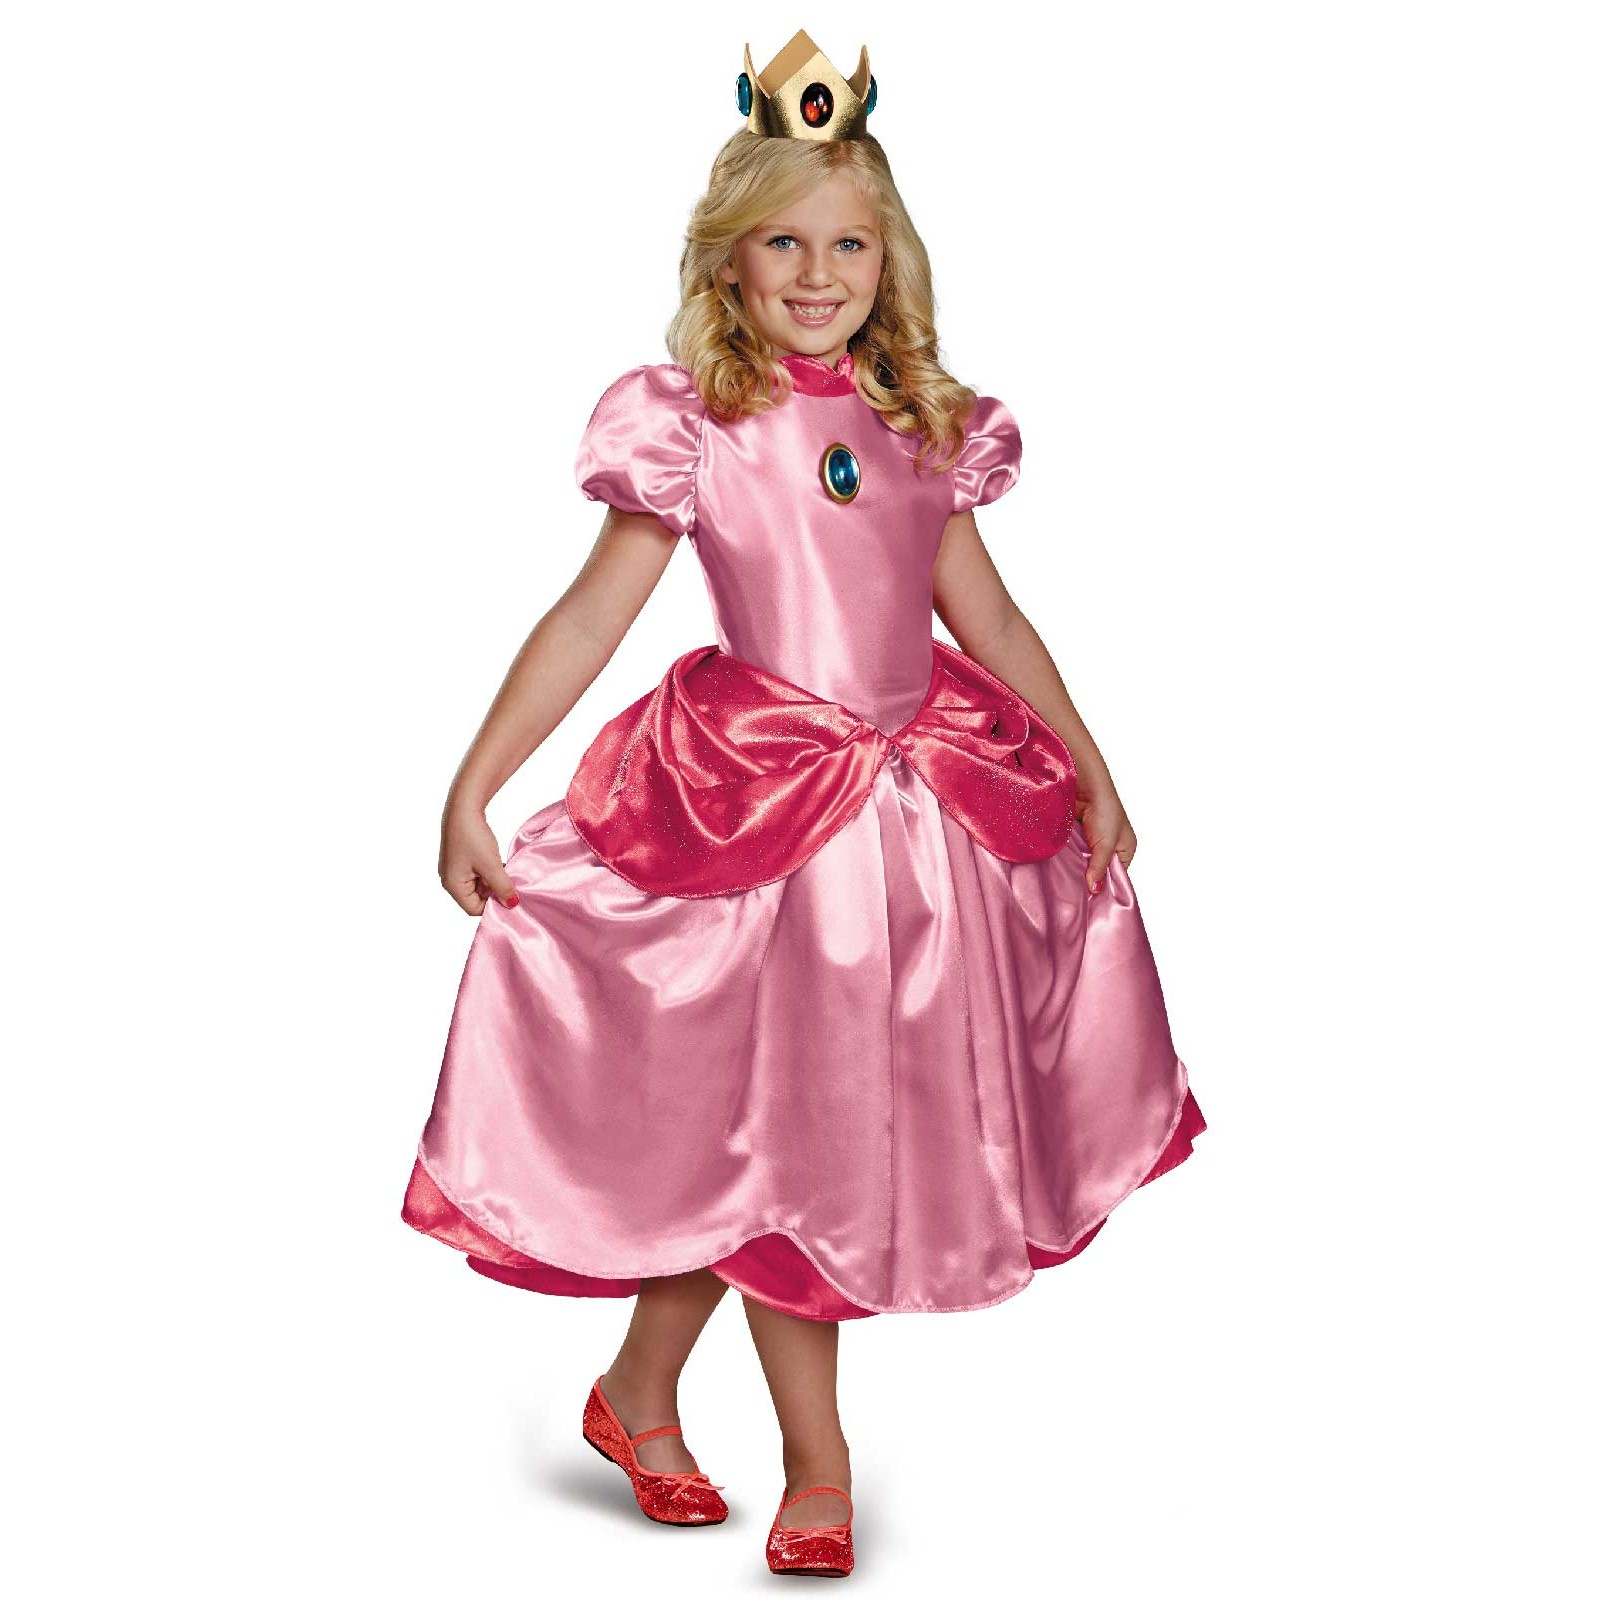 Pin by David on Paint by cell phone | Aurora sleeping ... |Princess Peach Cell